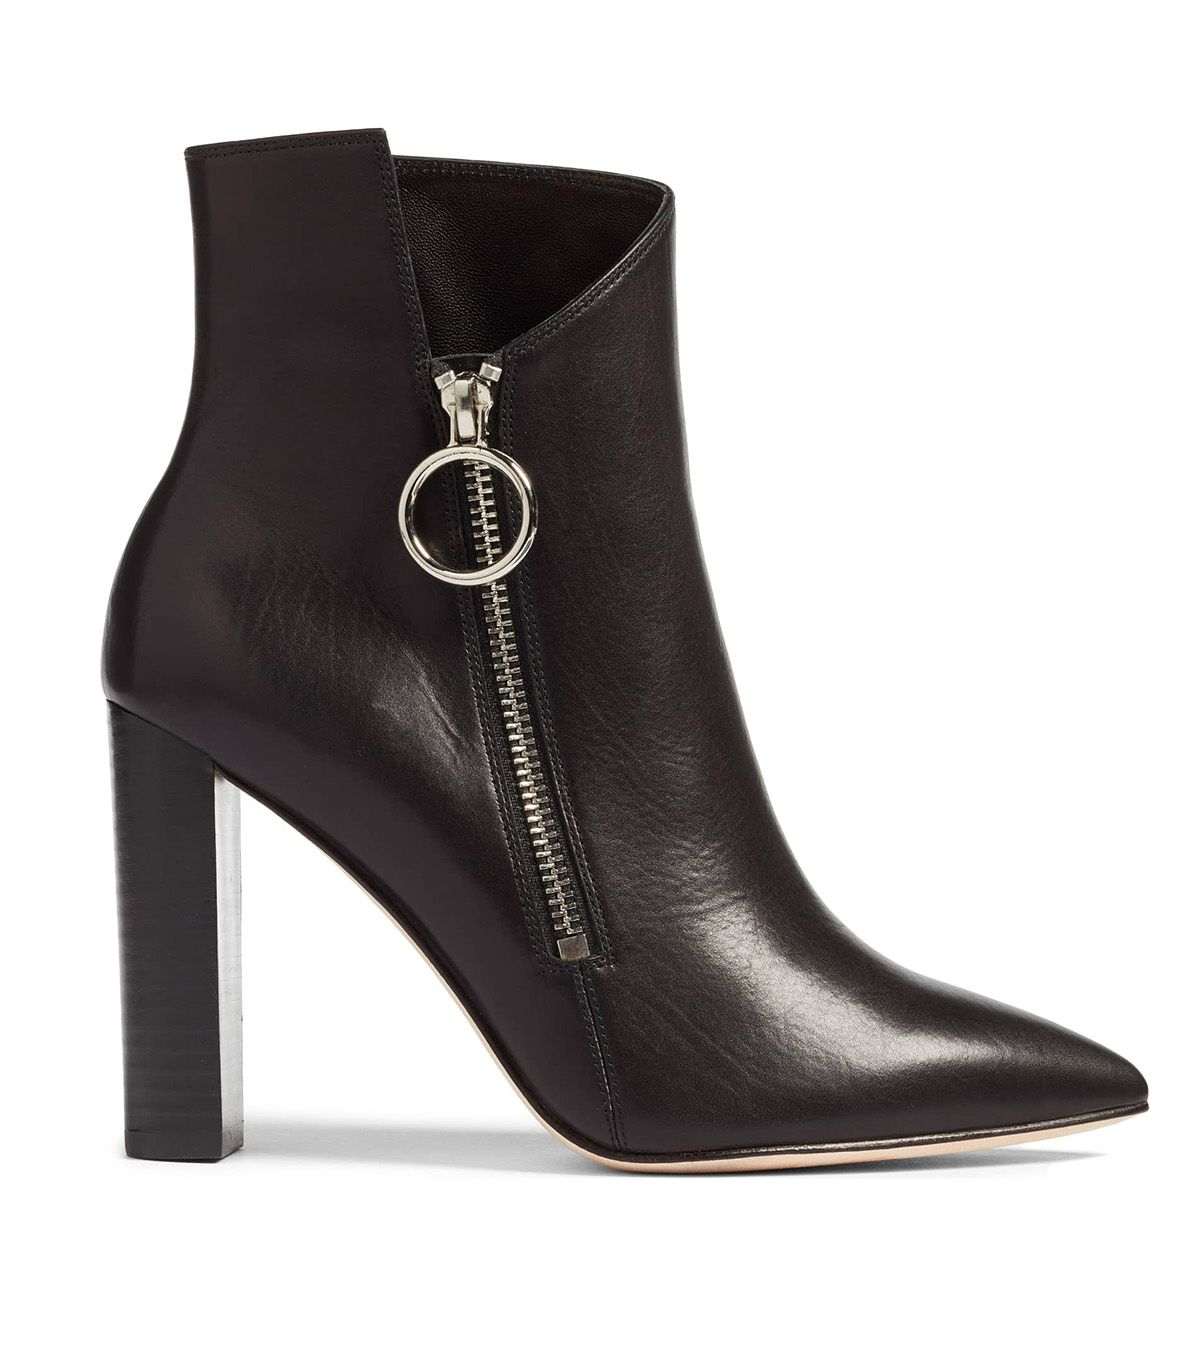 7c8a1ffa0c3b6 Kaia Gerber Wore the Most Comfortable Trendy Ankle Boots on All of ...